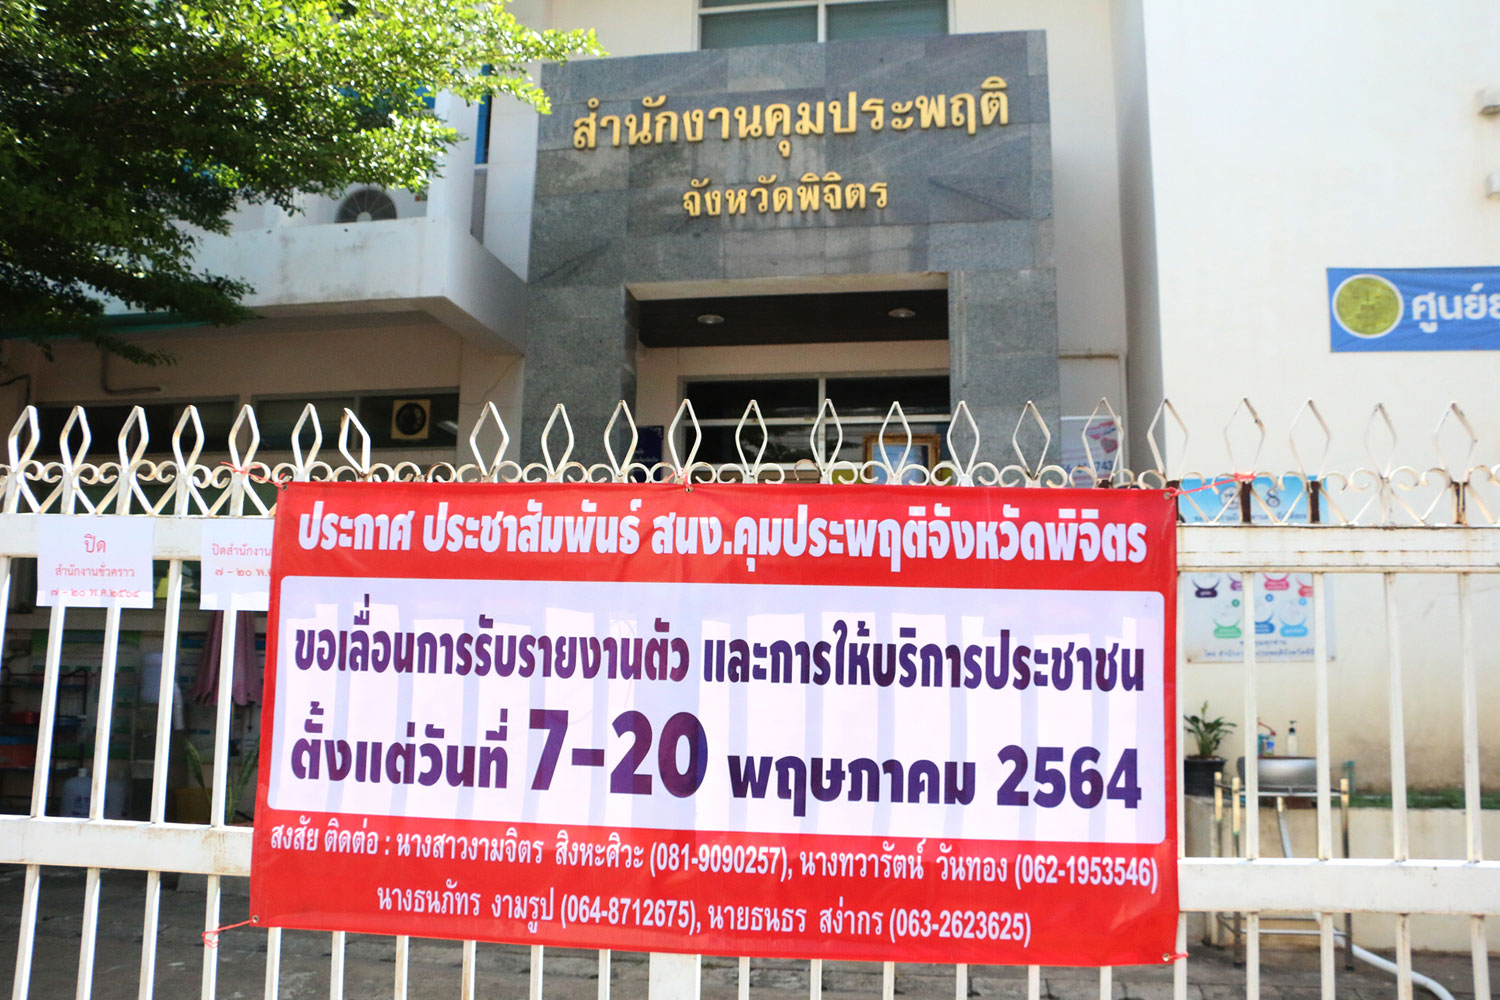 100 quarantined in Phichit after 3 civil servants test positive